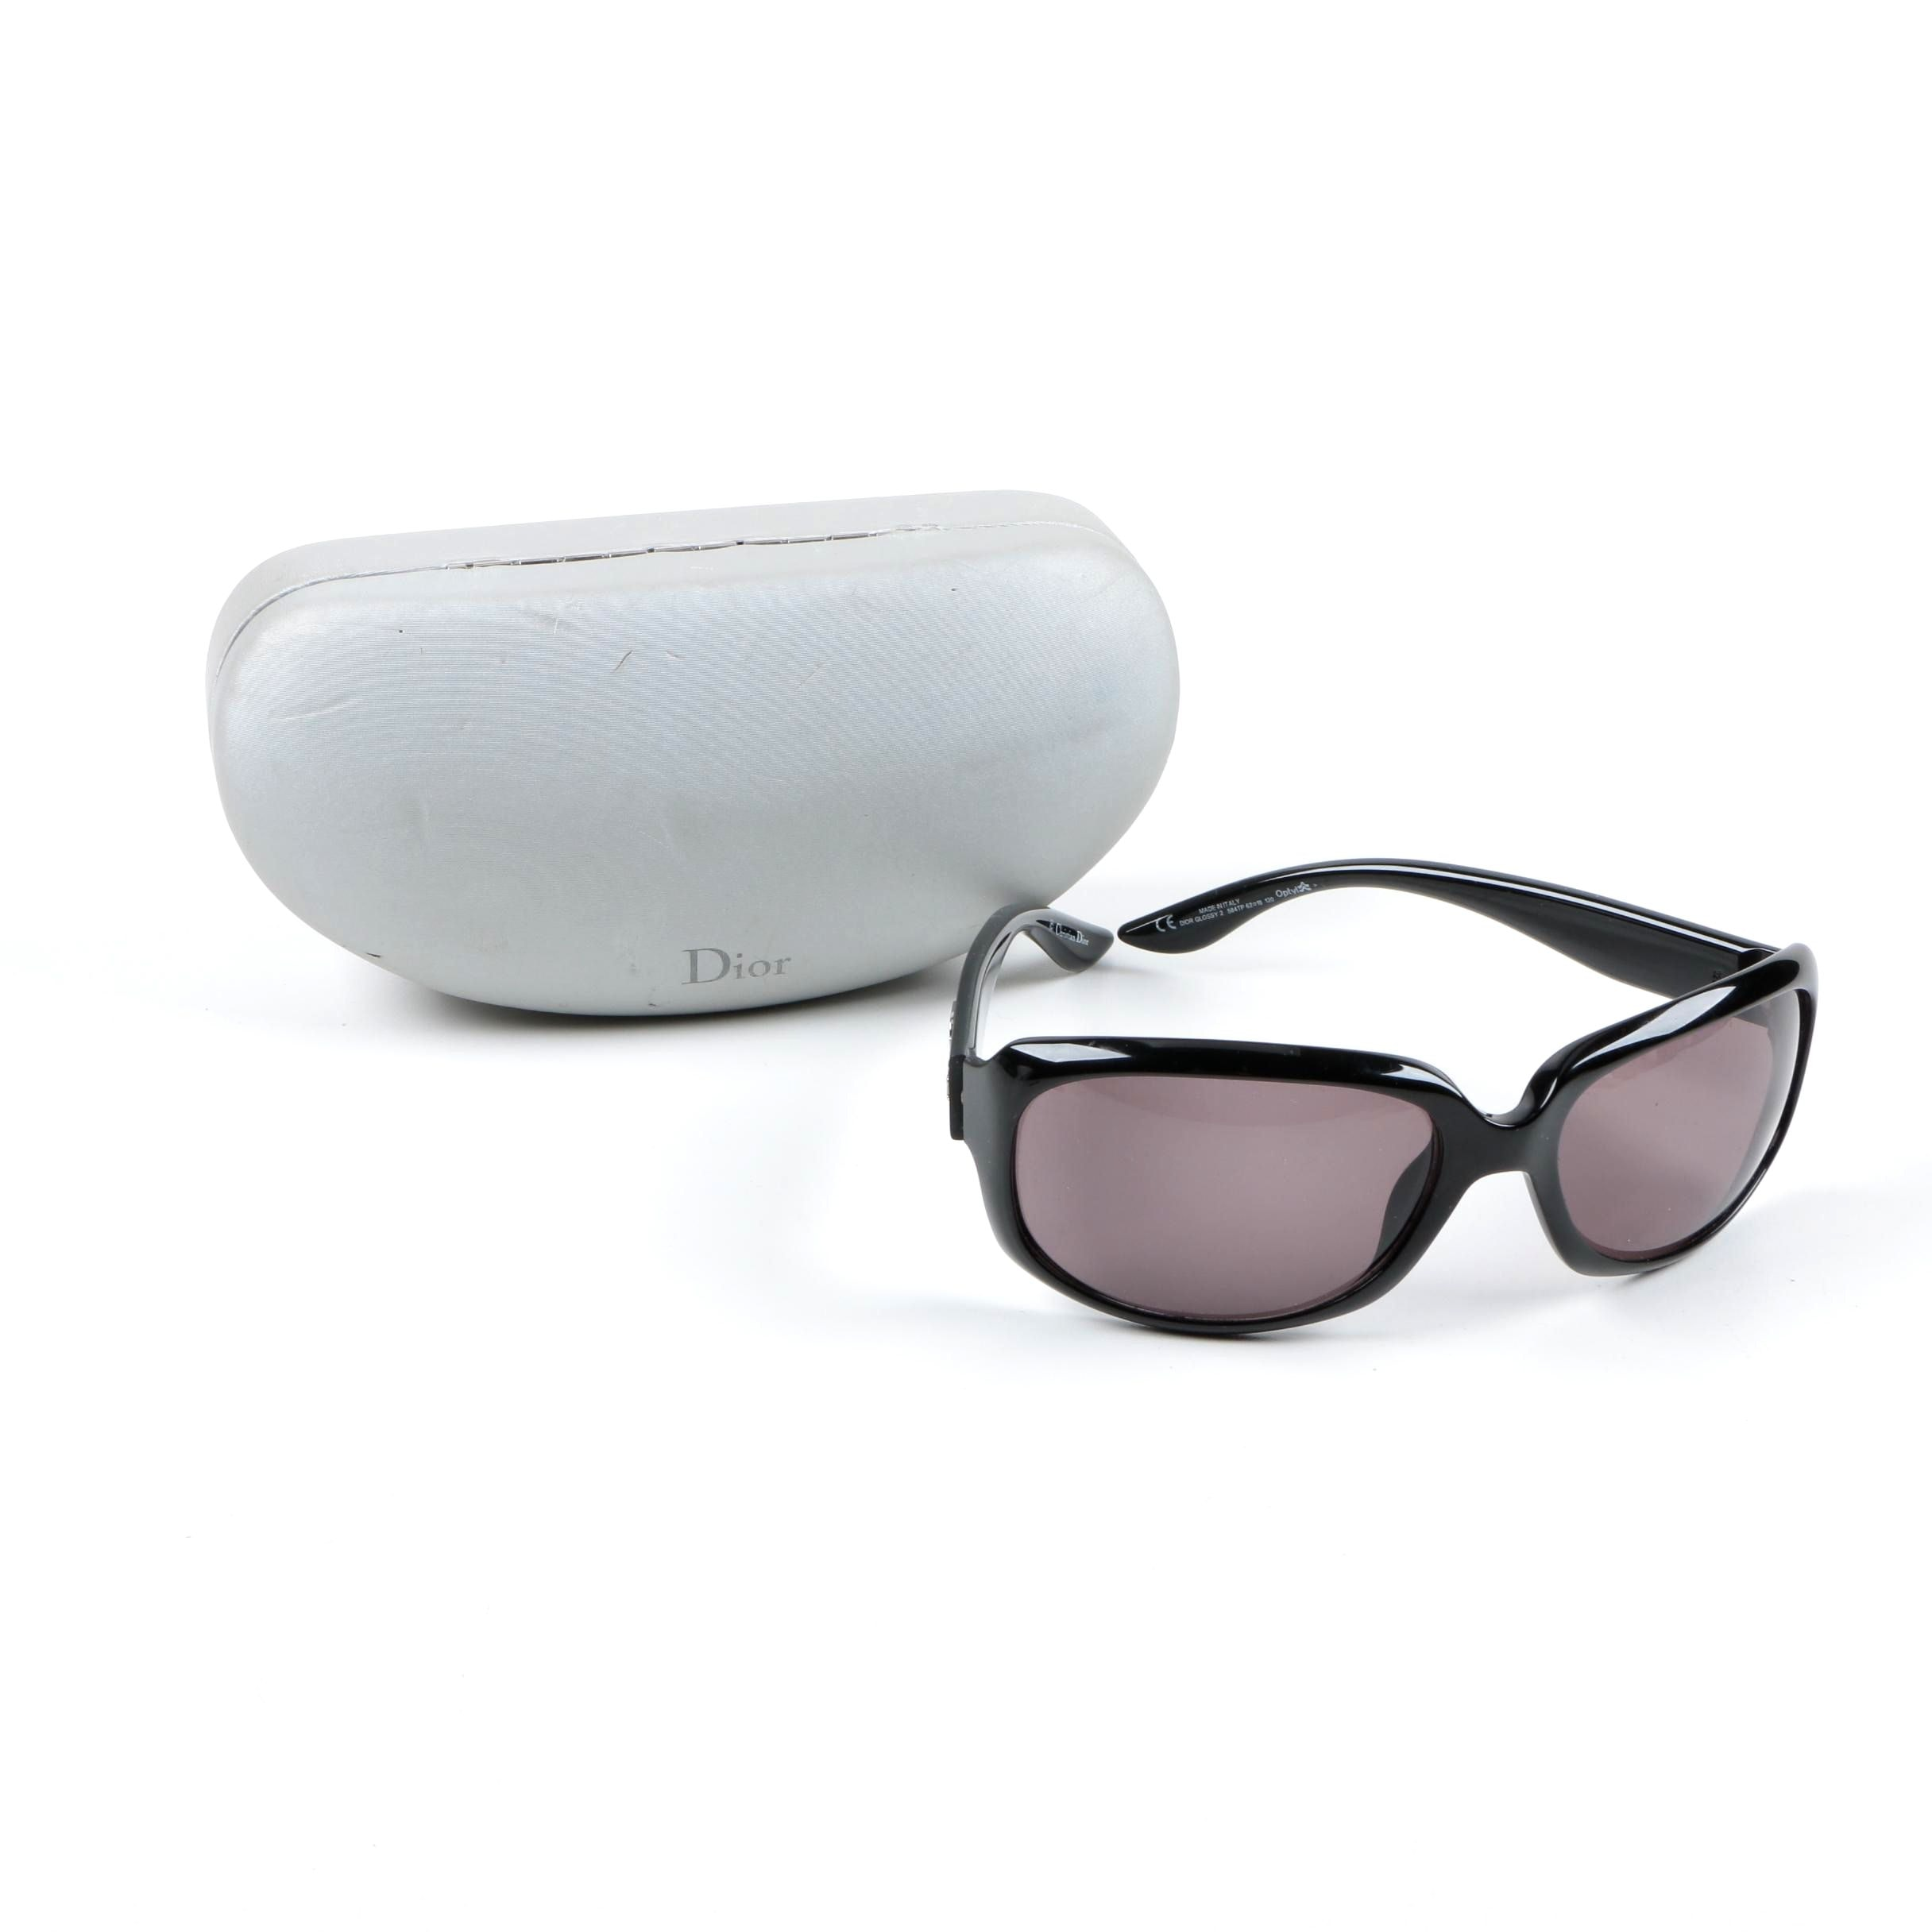 Christian Dior Glossy 2 Sunglasses